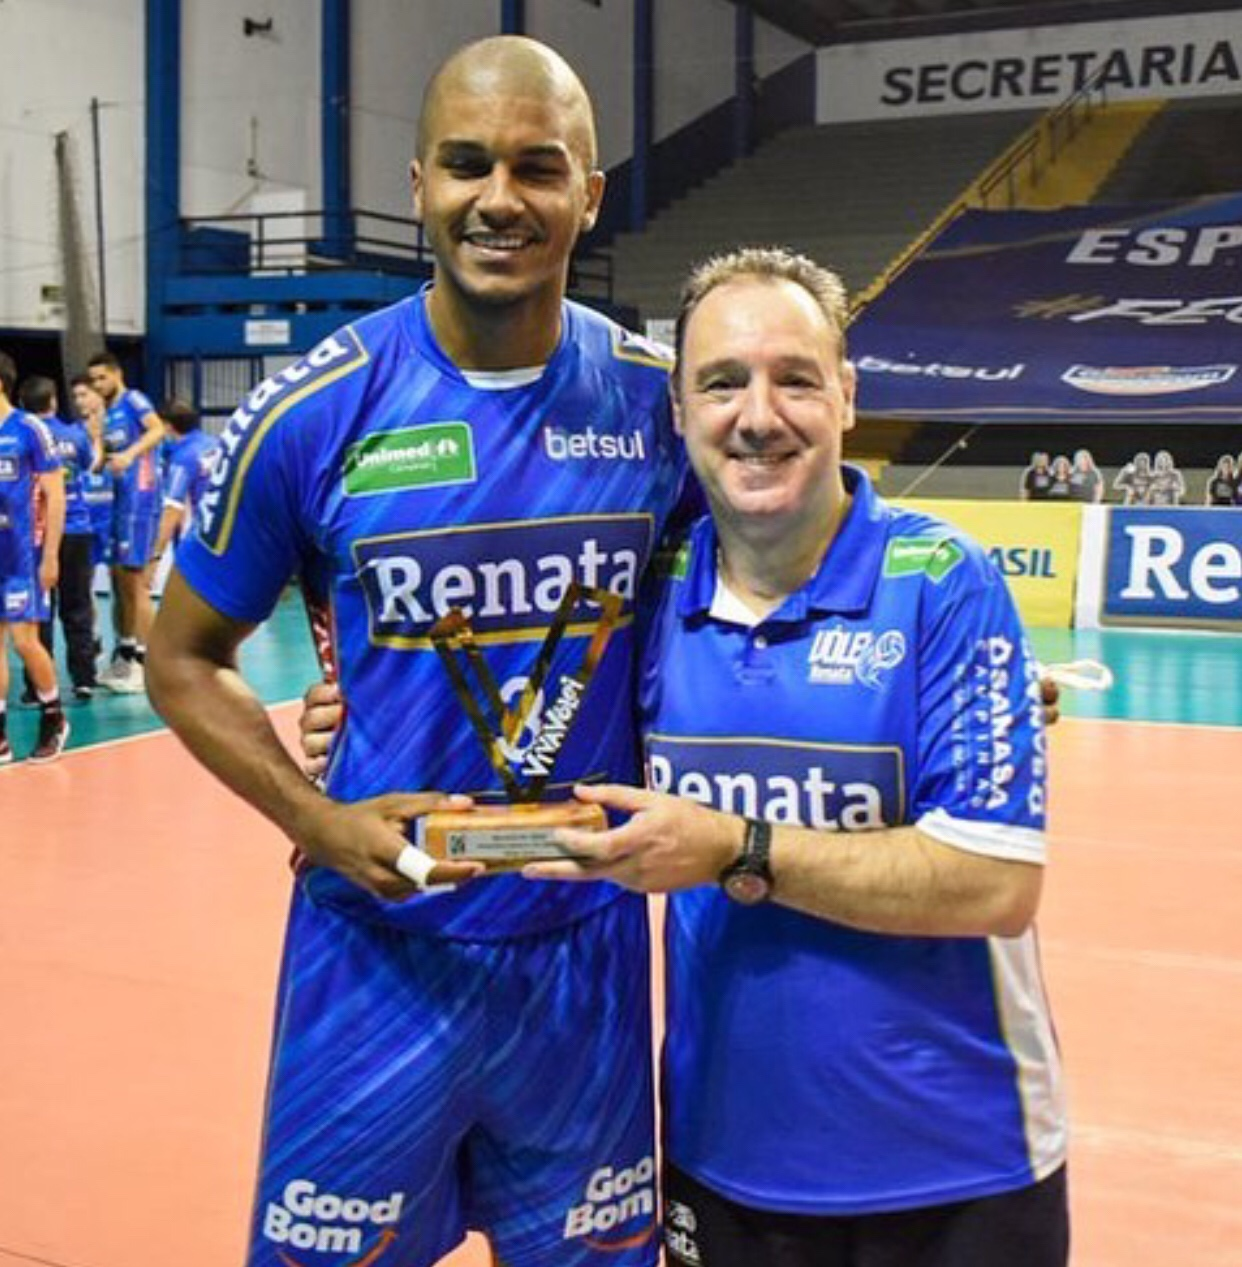 Brazil: 3 points as predicted for Sada Cruzeiro and Renata Campinas in Round 19